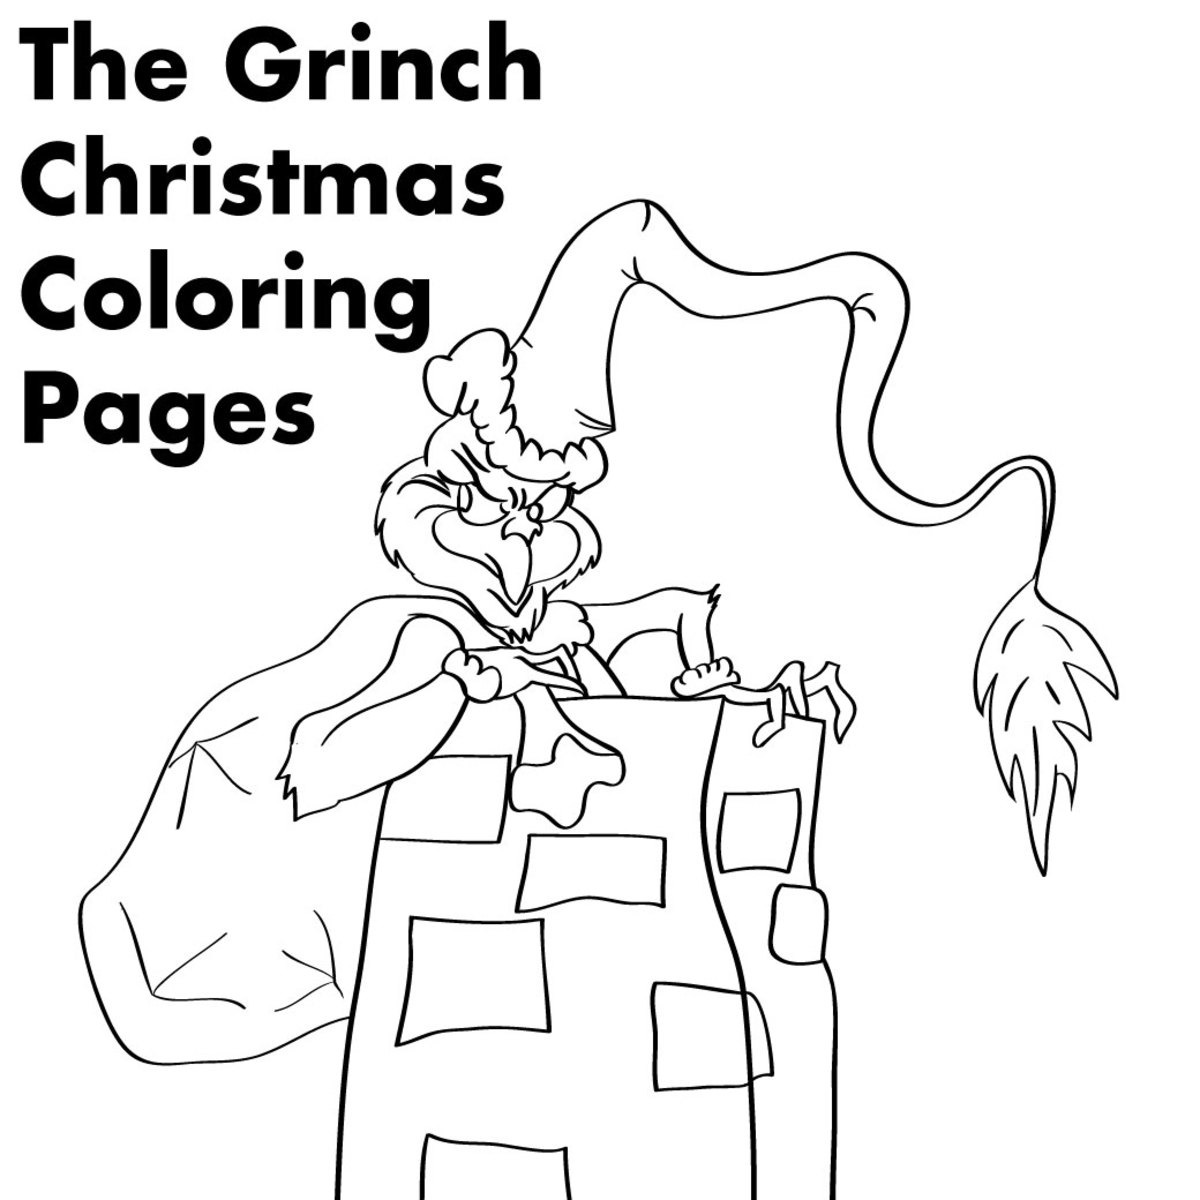 how the grinch stole christmas coloring pages dr seuss how the grinch stole christmas coloring pages christmas grinch pages stole how coloring the